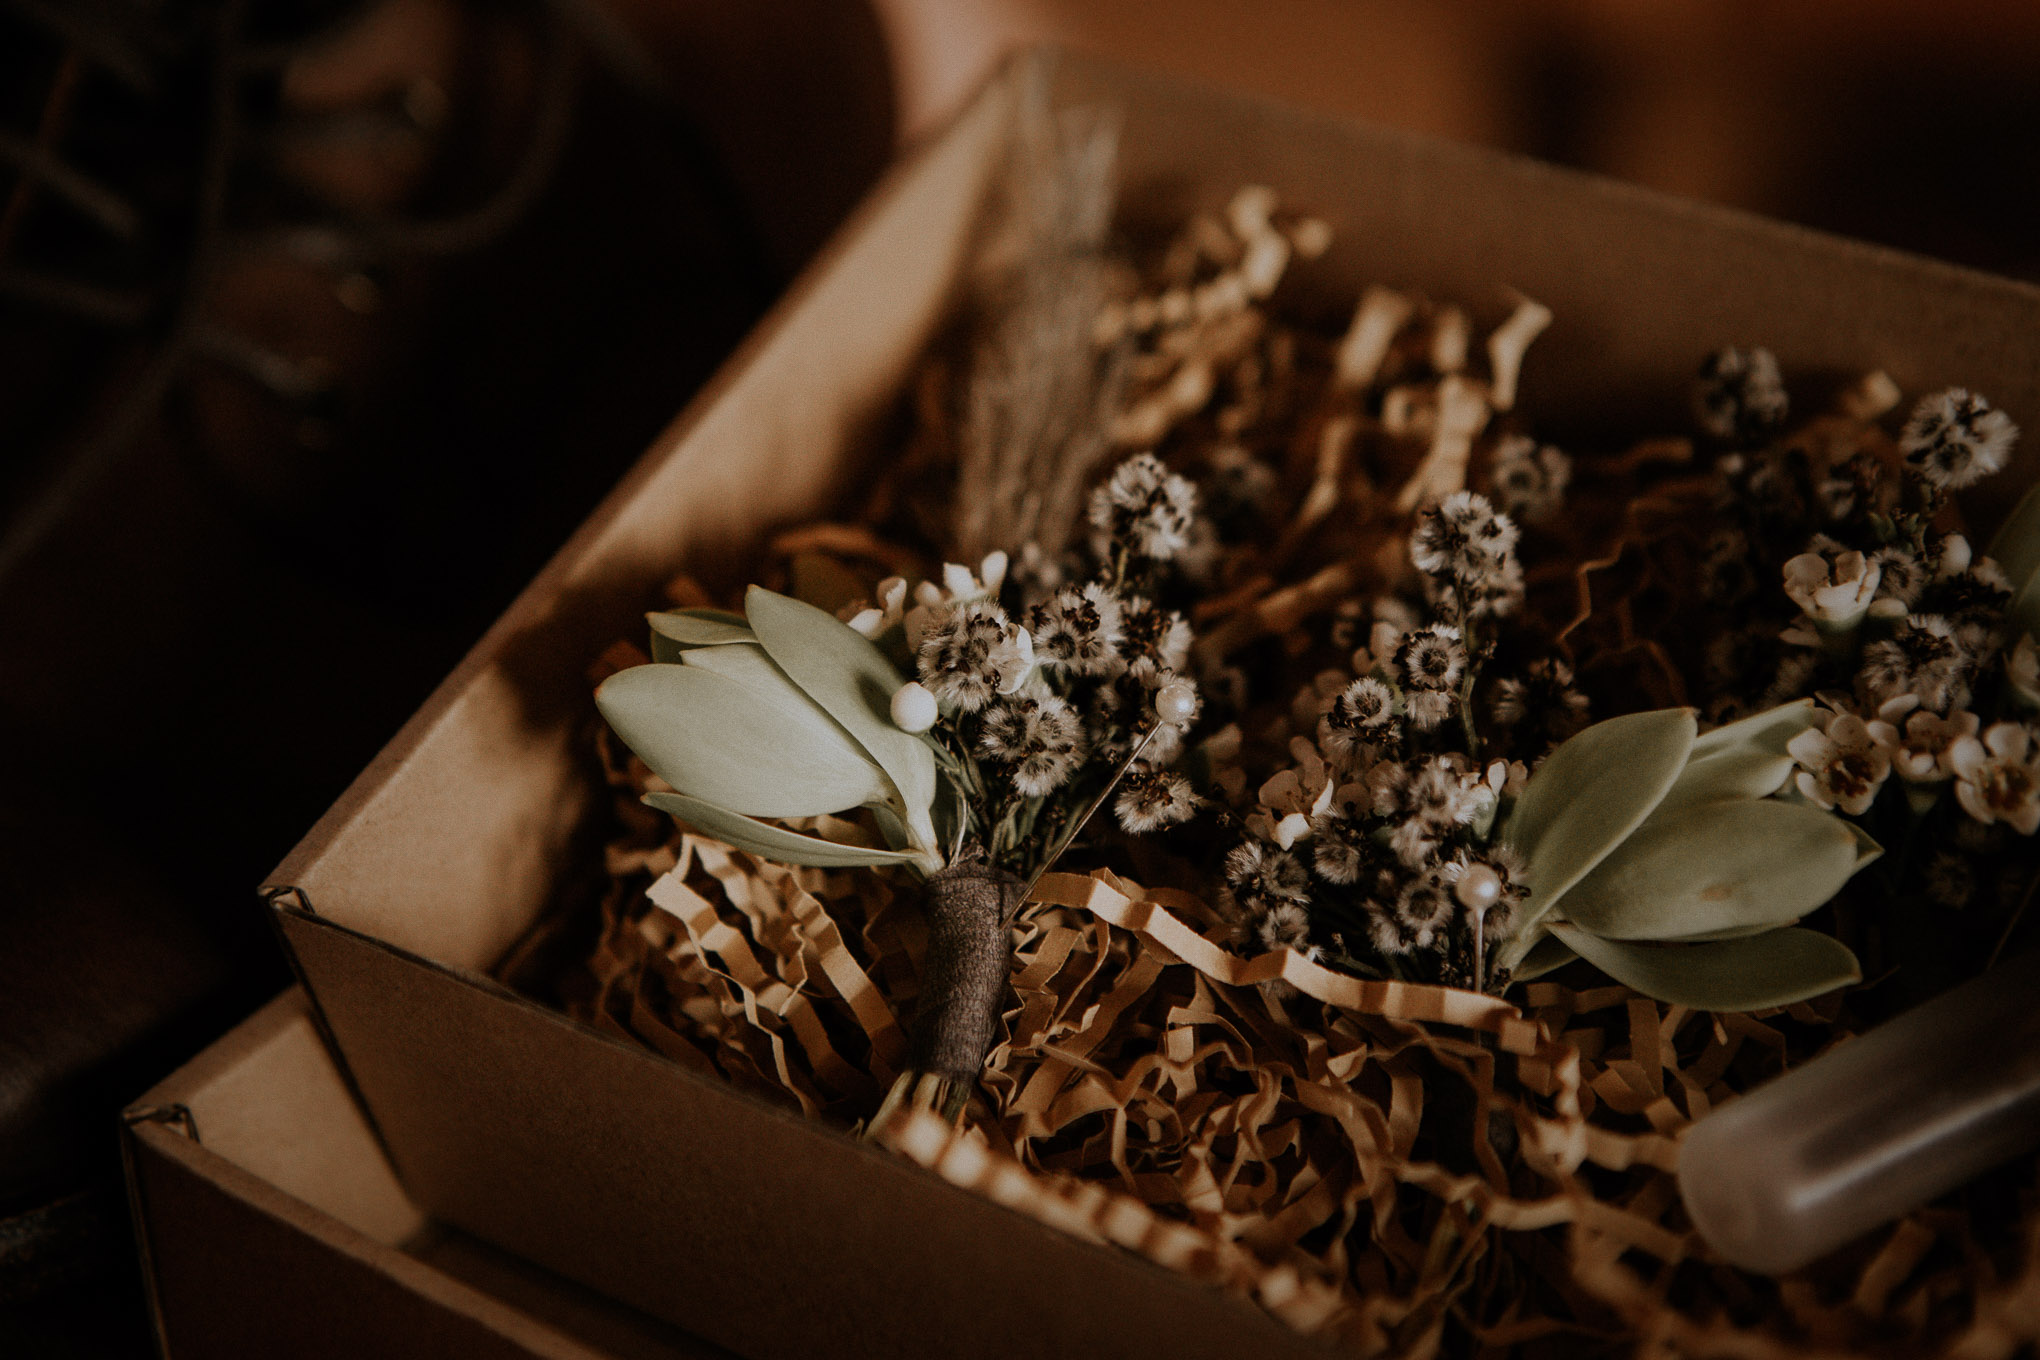 Groom's florals in a handcrafted box